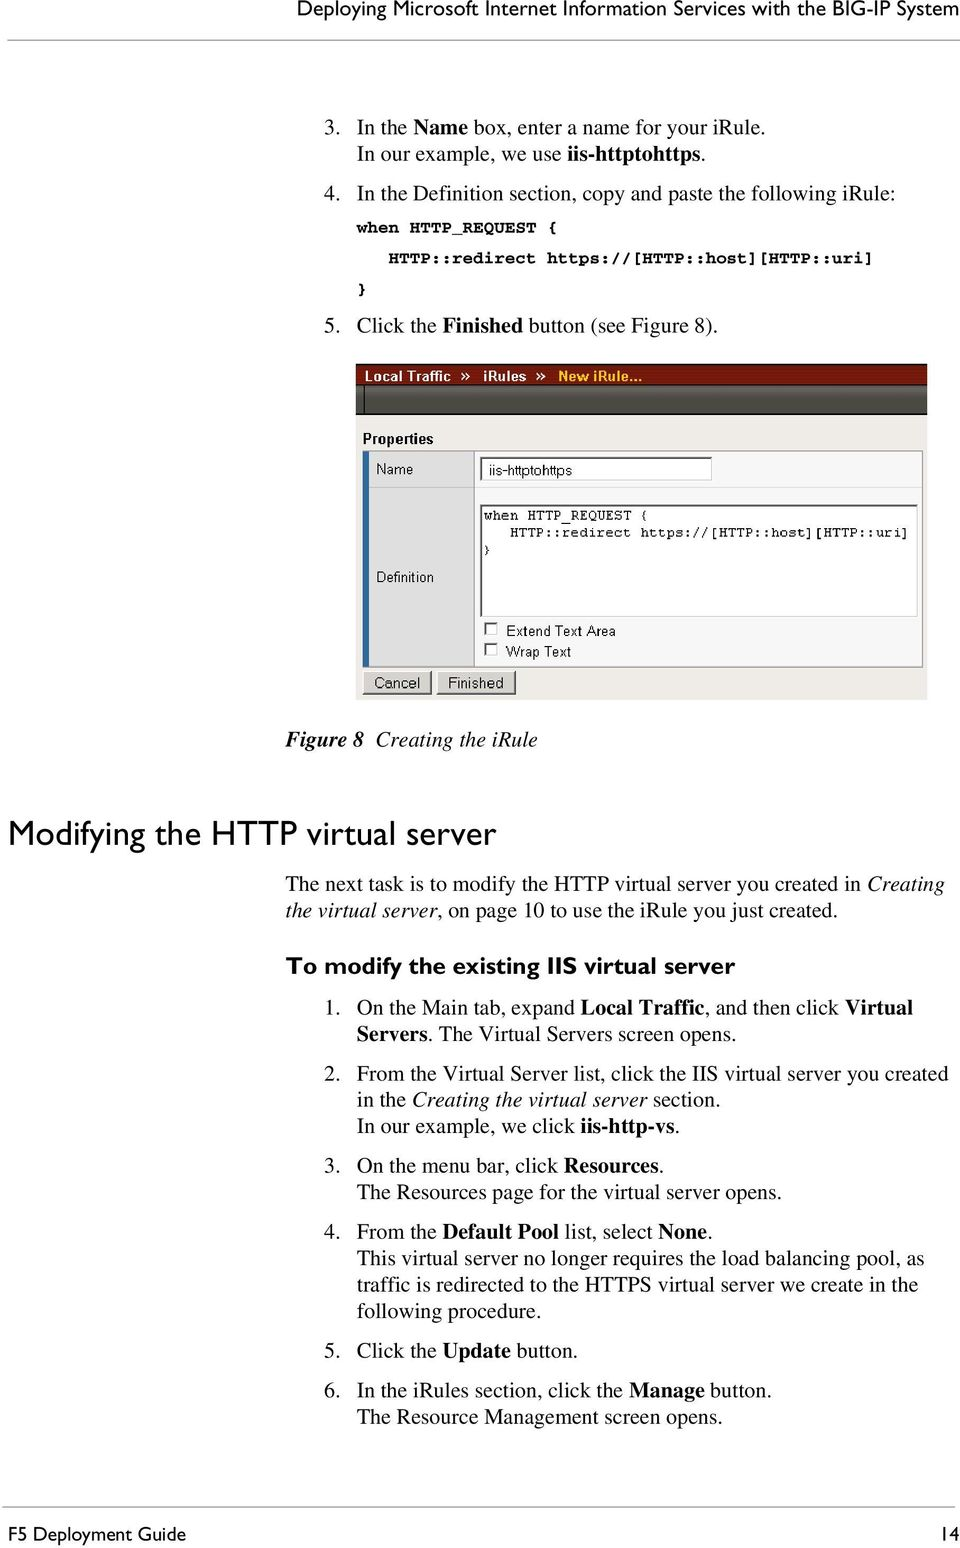 Figure 8 Creating the irule Modifying the HTTP virtual server The next task is to modify the HTTP virtual server you created in Creating the virtual server, on page 10 to use the irule you just